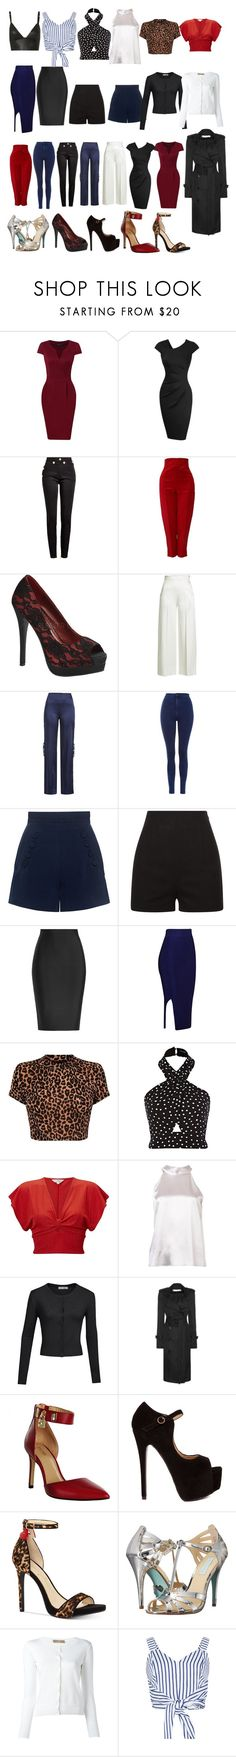 """""""femme fatal capsule wardrobe"""" by traceyenorton ❤ liked on Polyvore featuring Balmain, Versace, Pinup Couture, Roland Mouret, Jonathan Simkhai, Topshop, Finders Keepers, La Perla, Miss Selfridge and Galvan"""